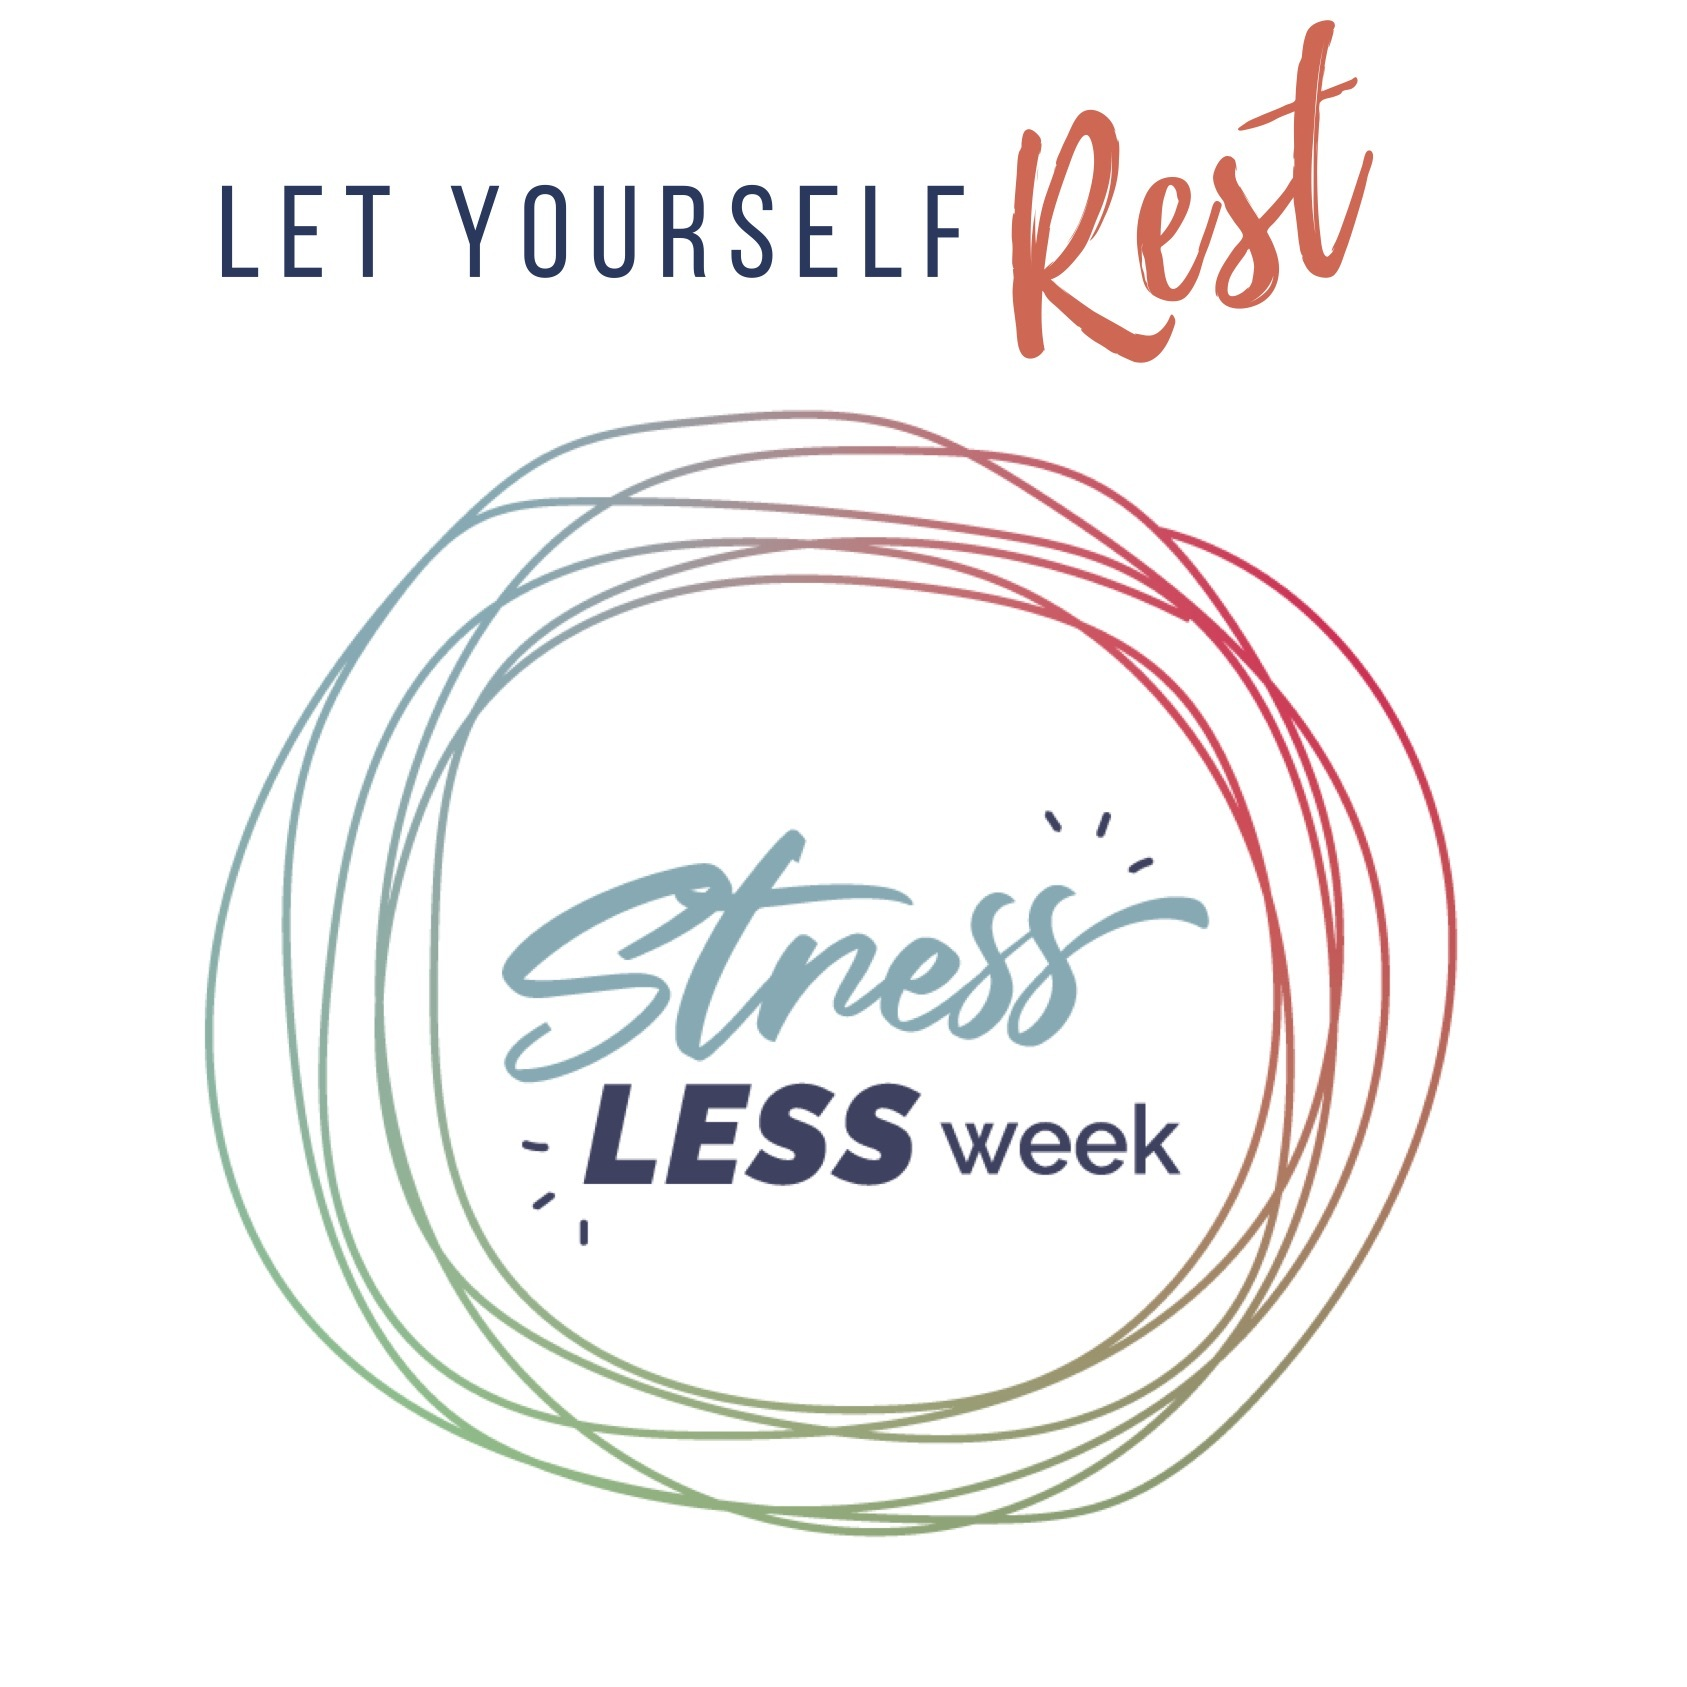 Copy of Let yourself rest